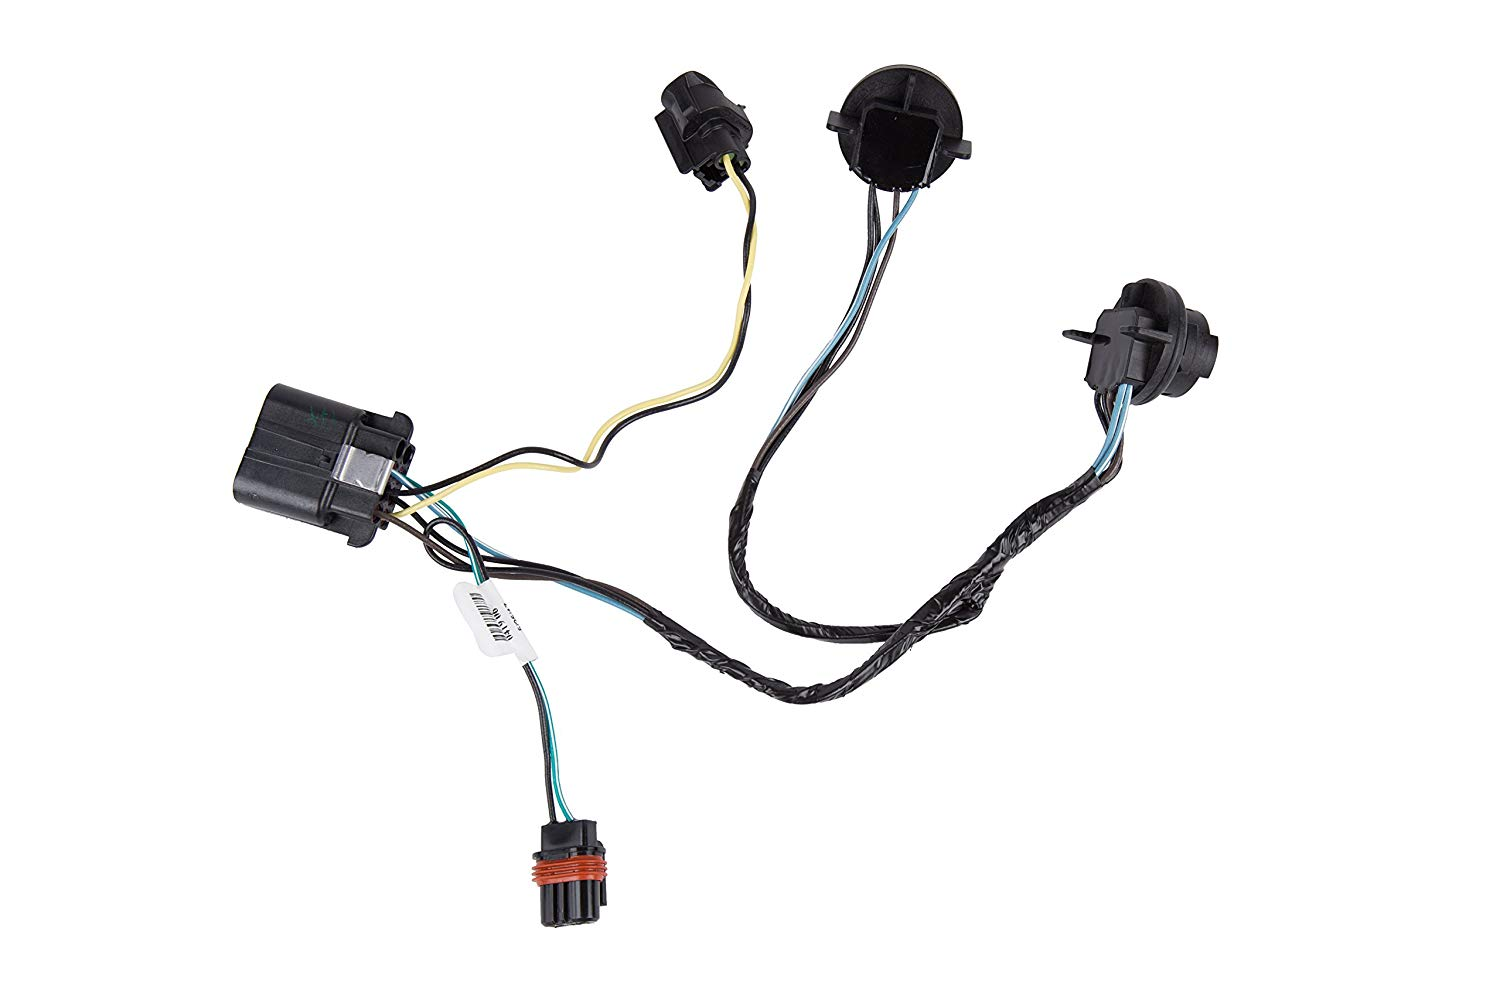 Cheap Headlight Switch Wiring Find Headlight Switch Wiring Deals On Line At Alibaba Com